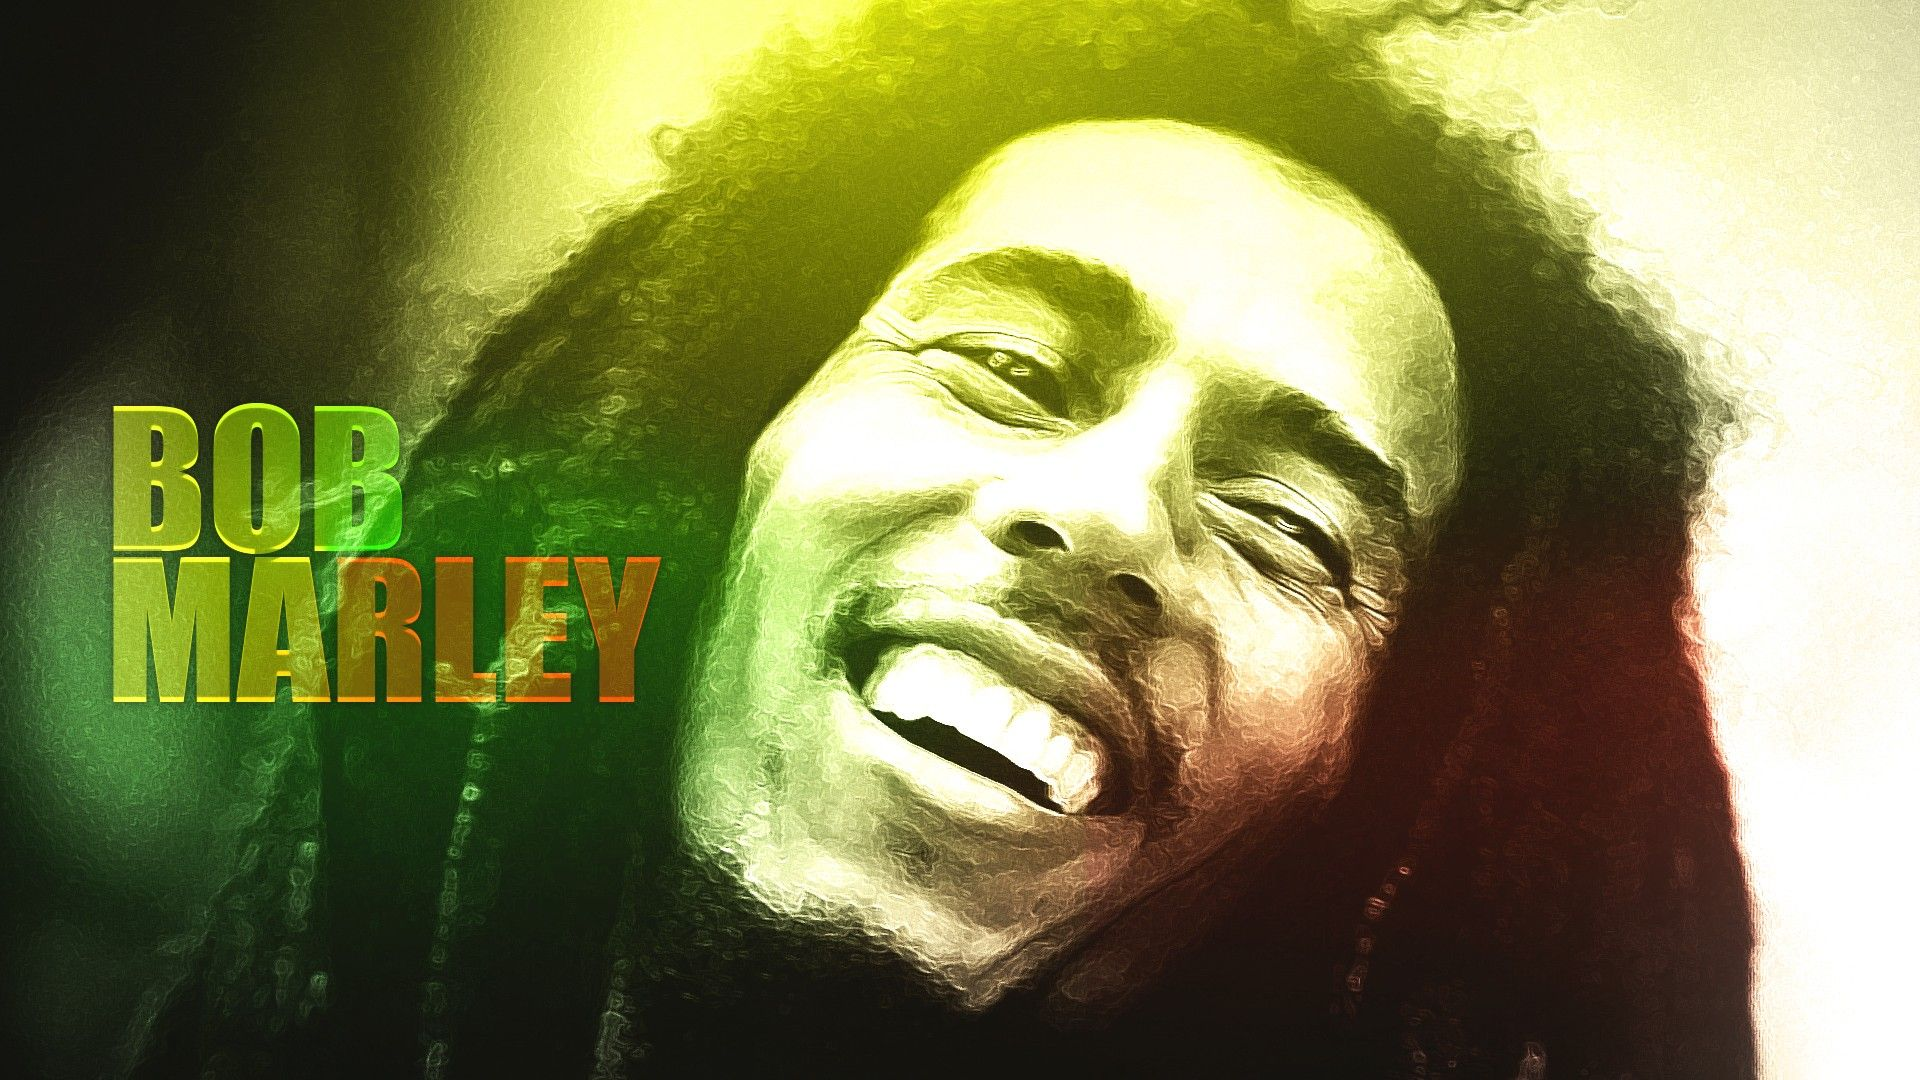 Image For Bob Marley Dreadlock Rasta Wallpaper Download Ideas 1024 768 Bob Marley Wallpapers 47 Wallpapers Adorable Wallpapers